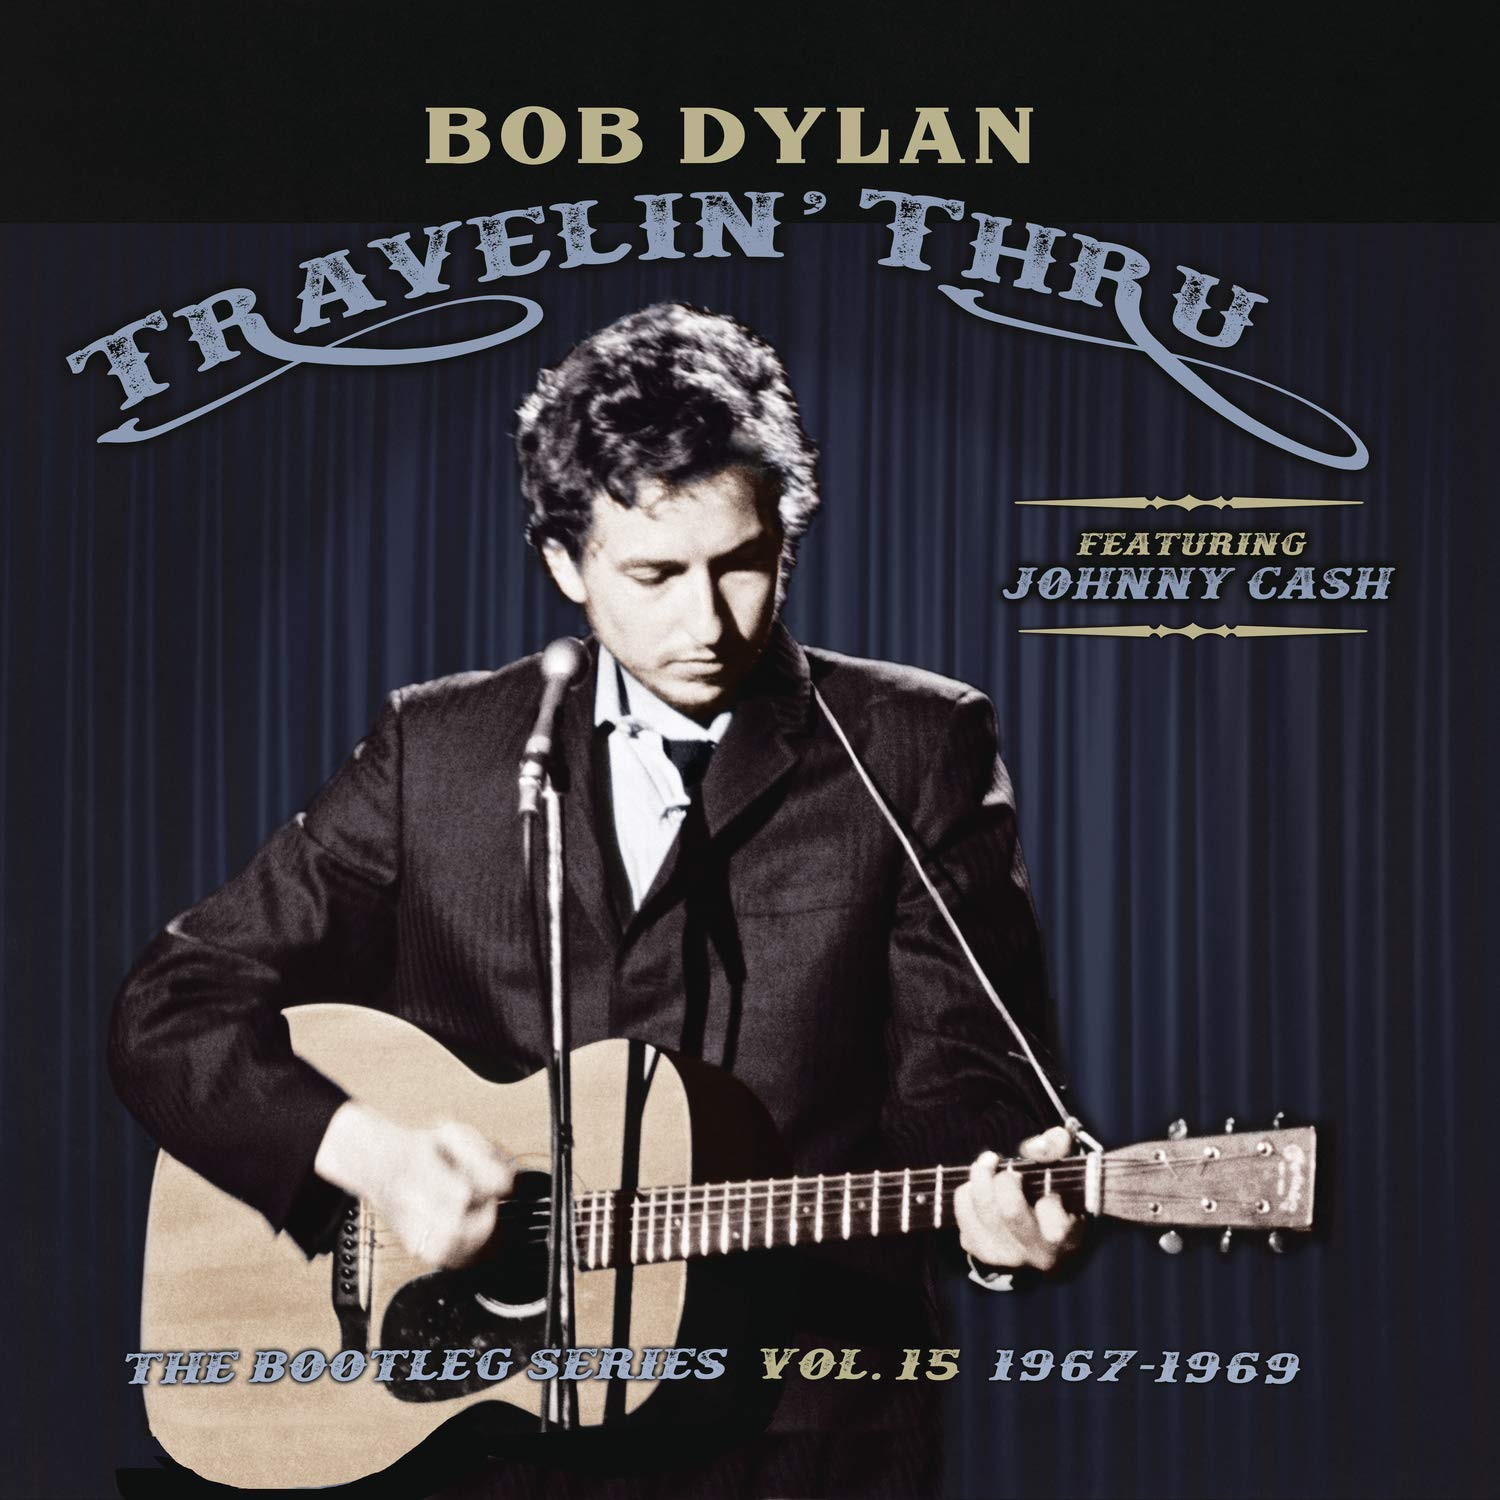 Bob Dyaln Johnny Cash Travelin Thru The Bootleg Series Vol. 15 1967-1969 album cover artwork